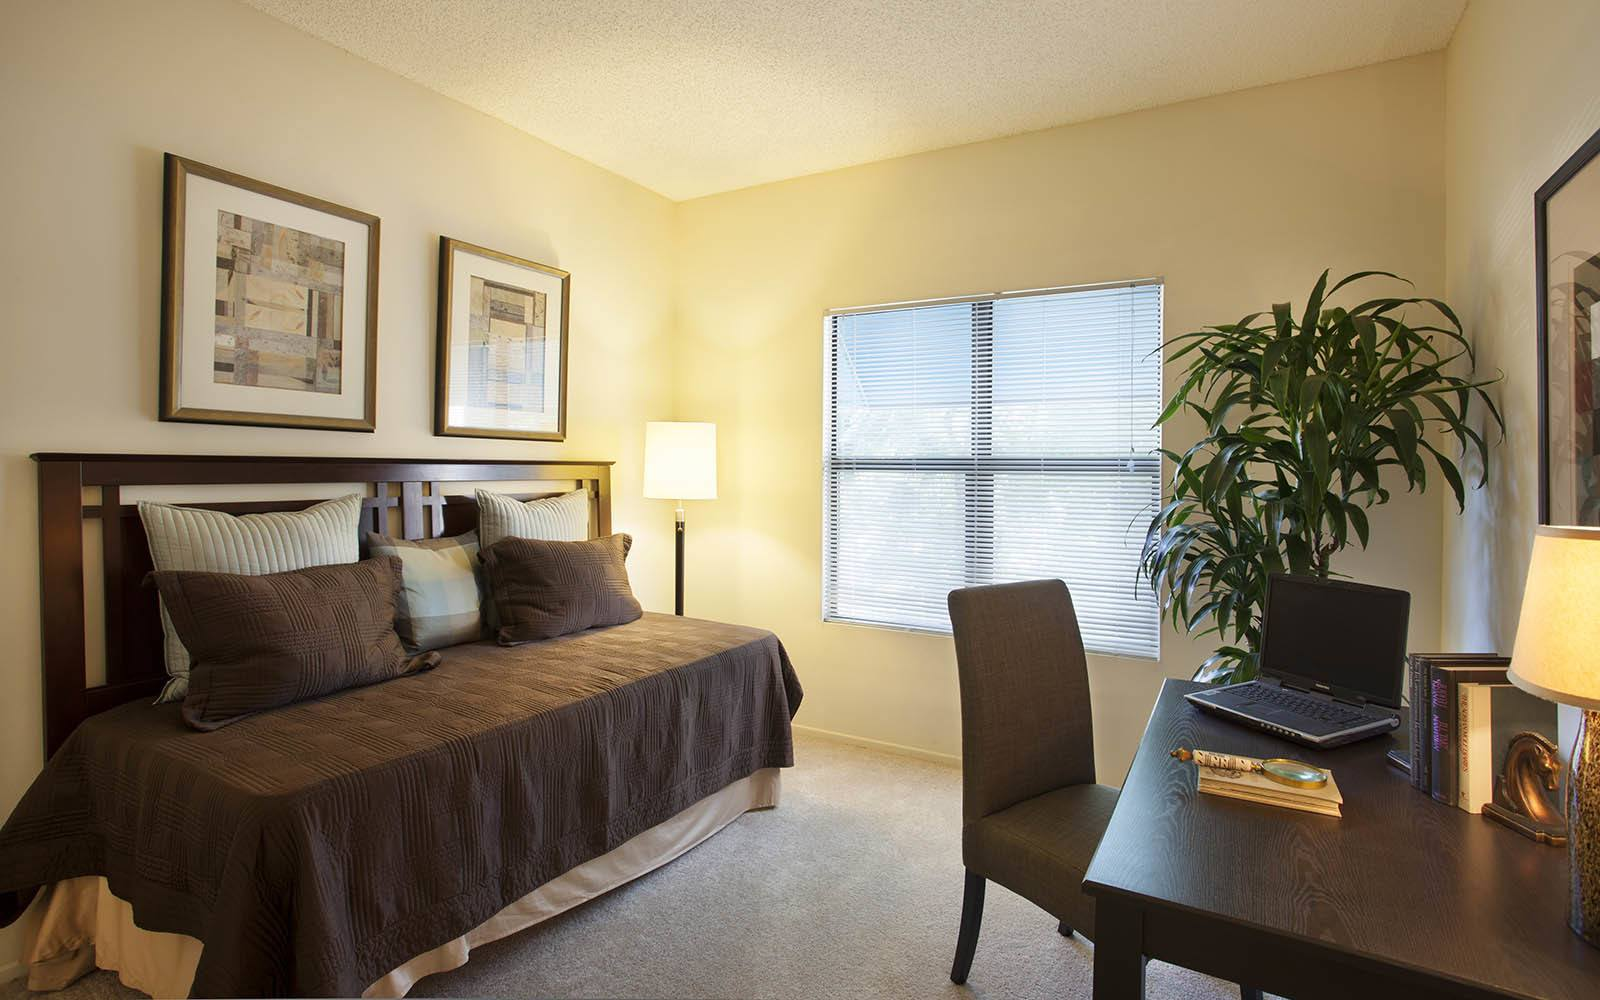 Room With Daybed at Cypress Point Apartments in Ventura, CA